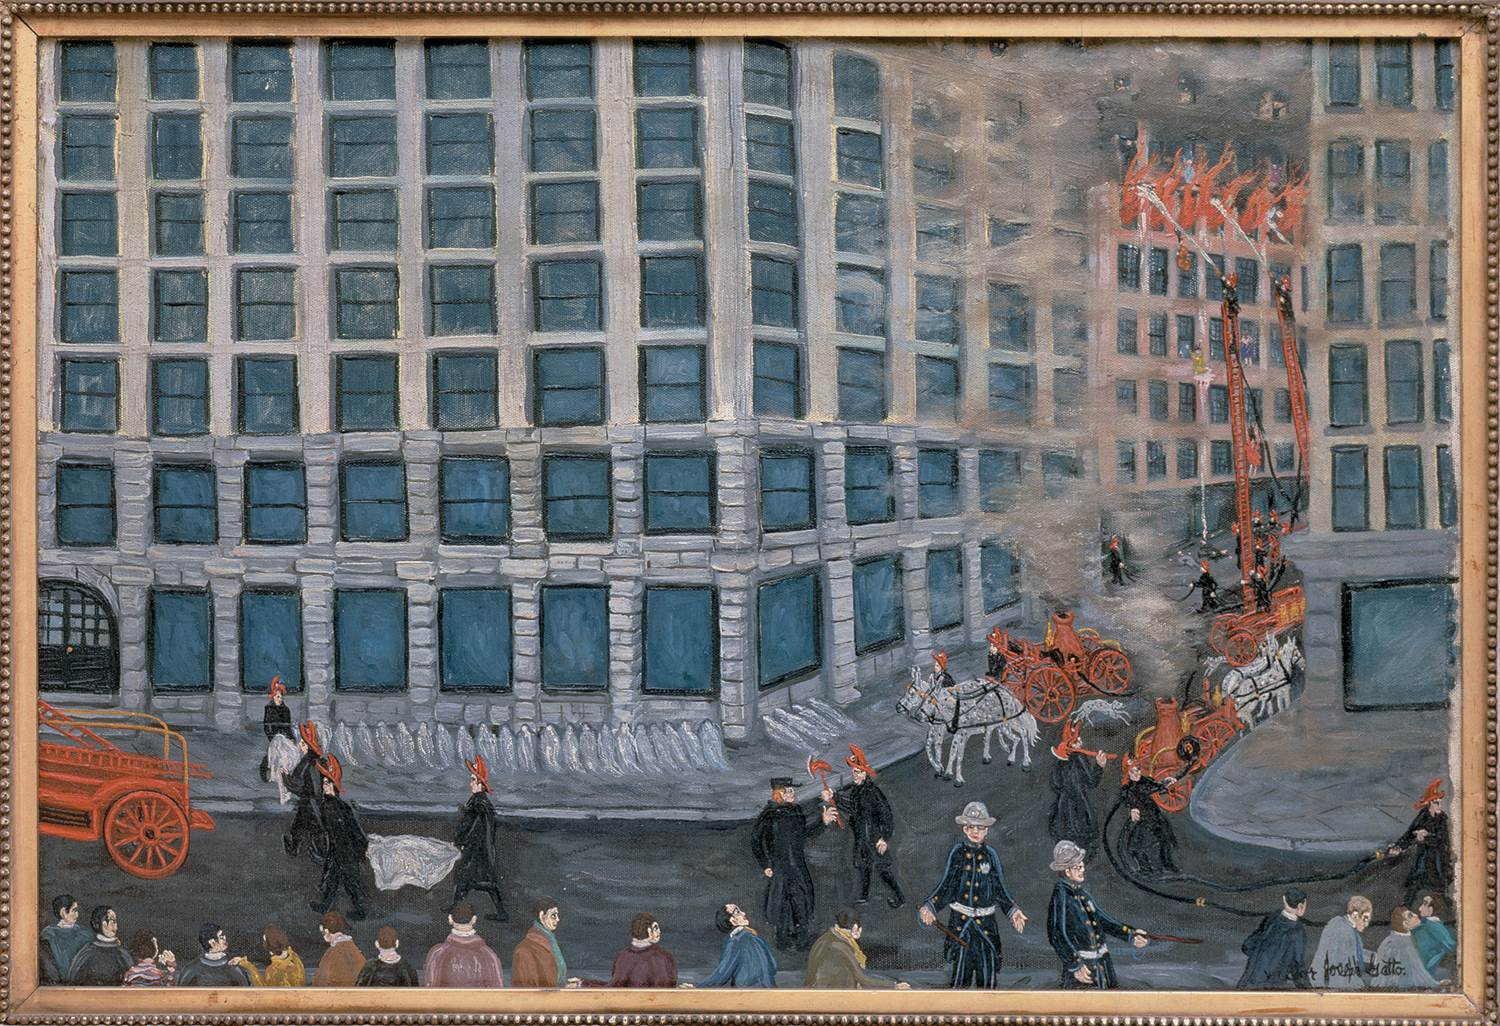 essay on triangle fire On march 25, 1911, a fire in an overcrowded manhattan sweatshop caused the  deaths of 146 people, mostly young immigrant women from.